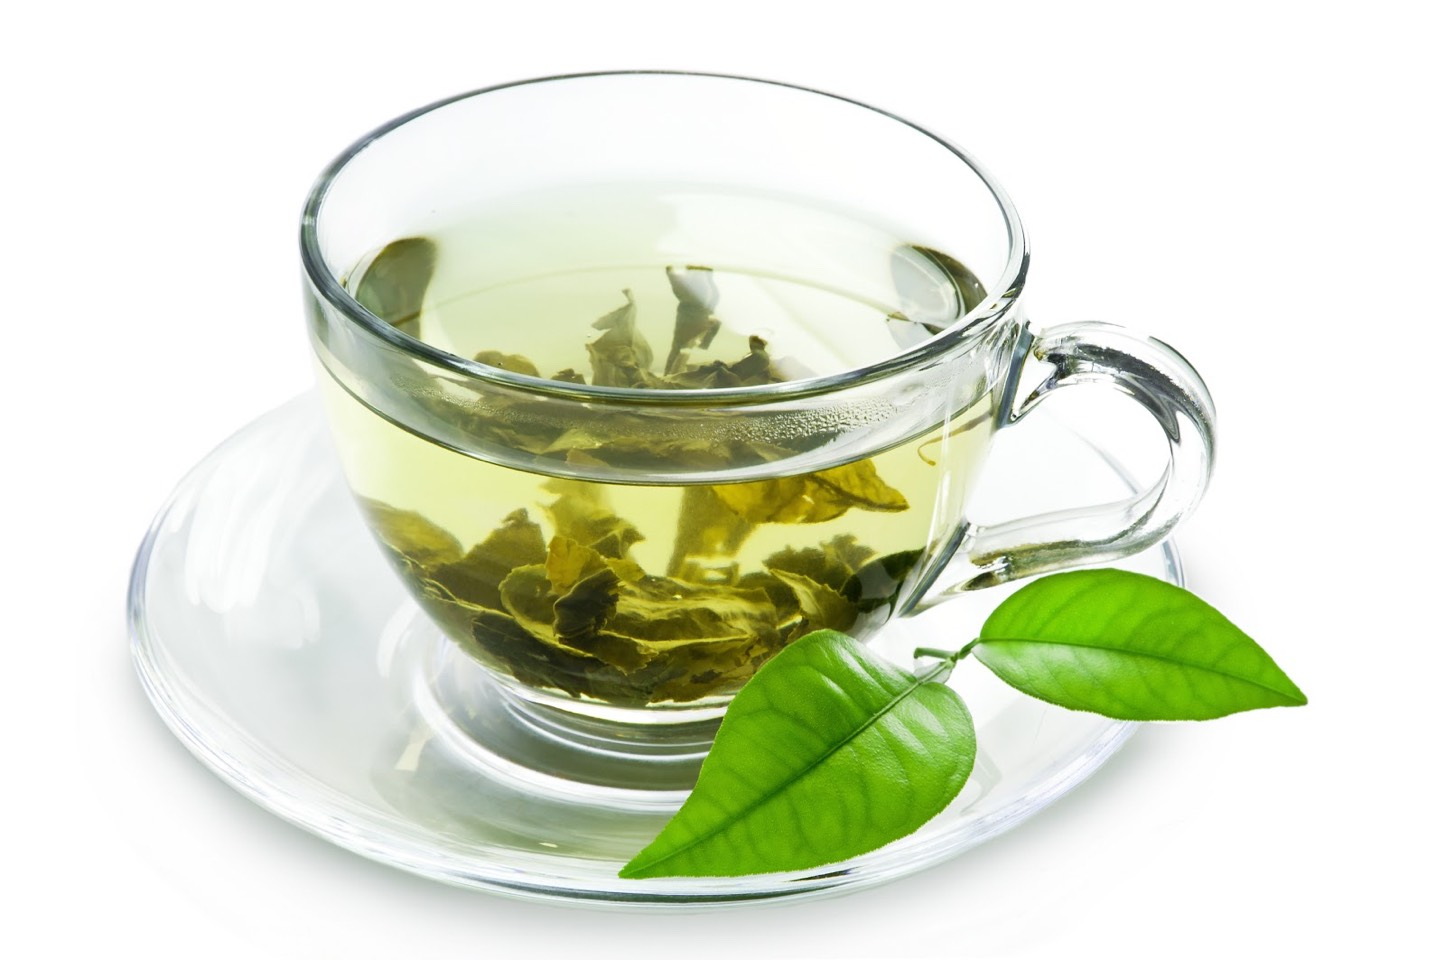 Green Tea  The most bikini-friendly beverage out there (other than lots of water, of course) is green tea. Not only will green tea hydrate you and help suppress your appetite,can even boost your metabolism and aid in weight loss. Try green tea instead of coffee.